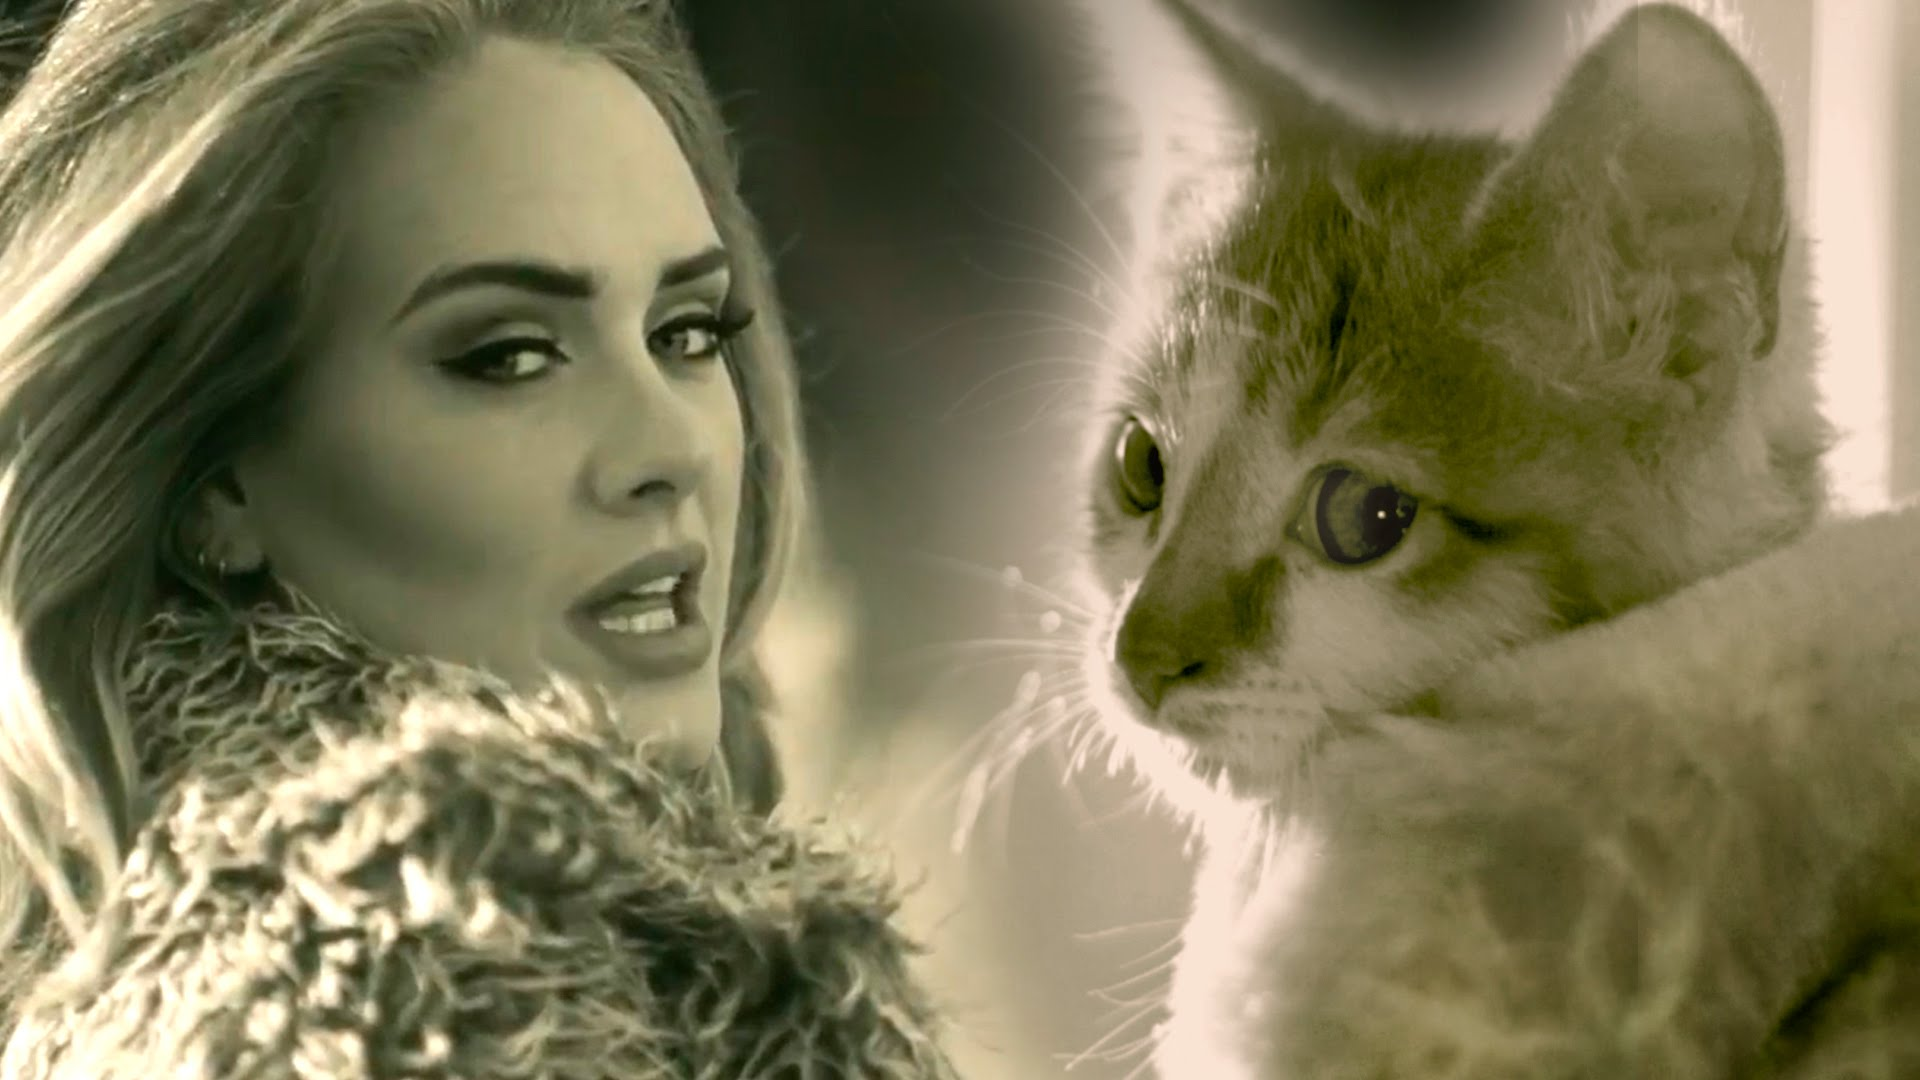 Meow An Adorable Parody Of The Adele Song Hello Promoting Cat Adoption At East Bay SPCA